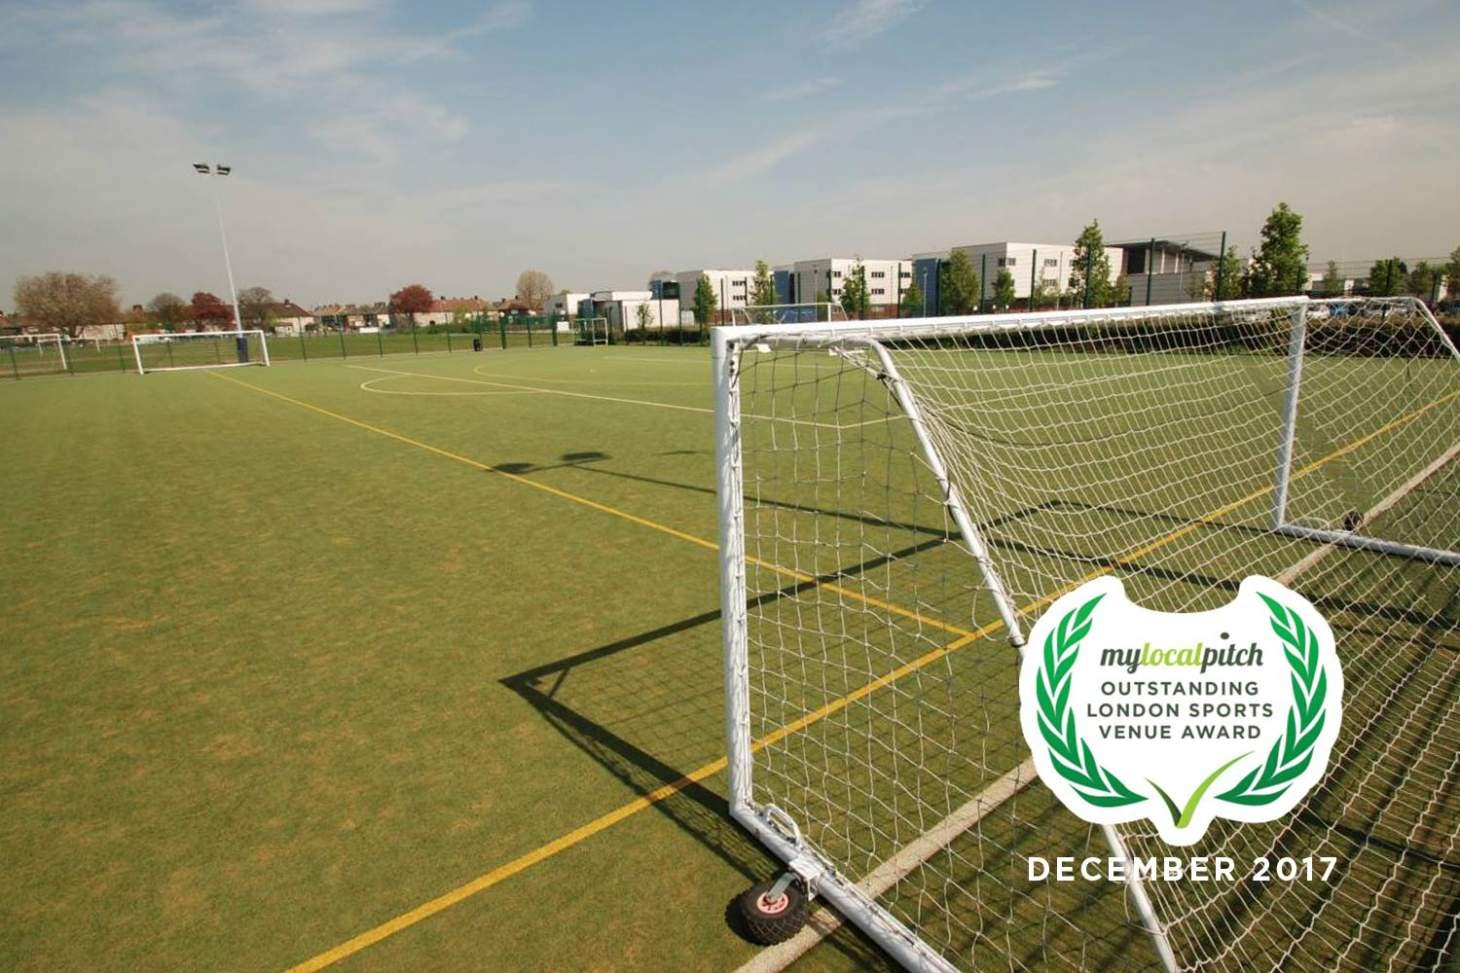 Castle Green Leisure Centre 5 a side | Astroturf football pitch